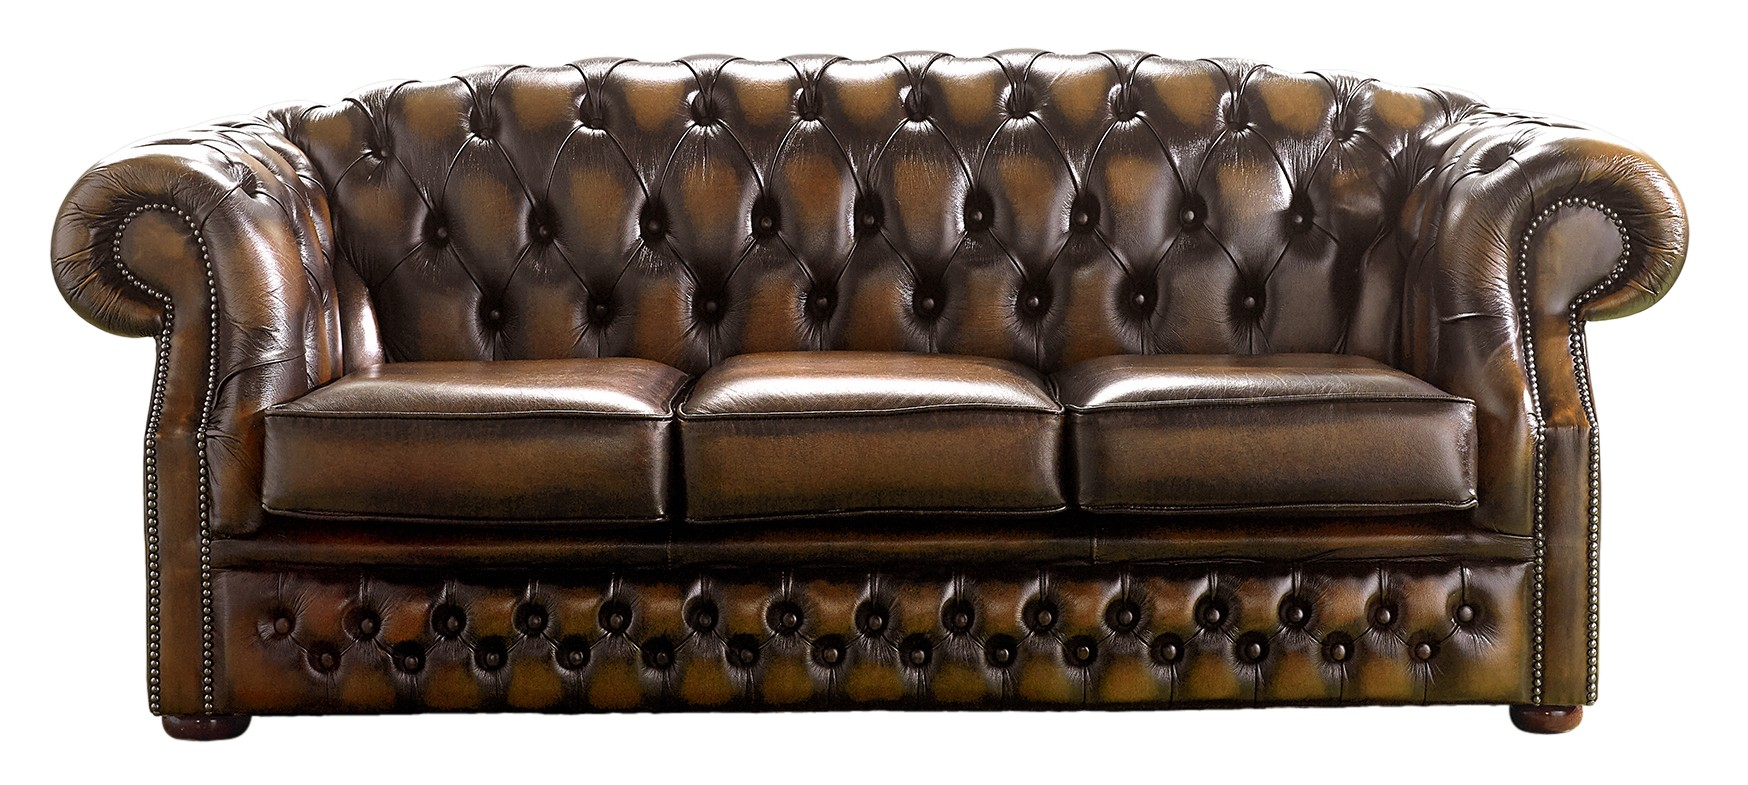 Chesterfield Handmade Buckingham 3 Seater Sofa Antique Autumn Tan Leather